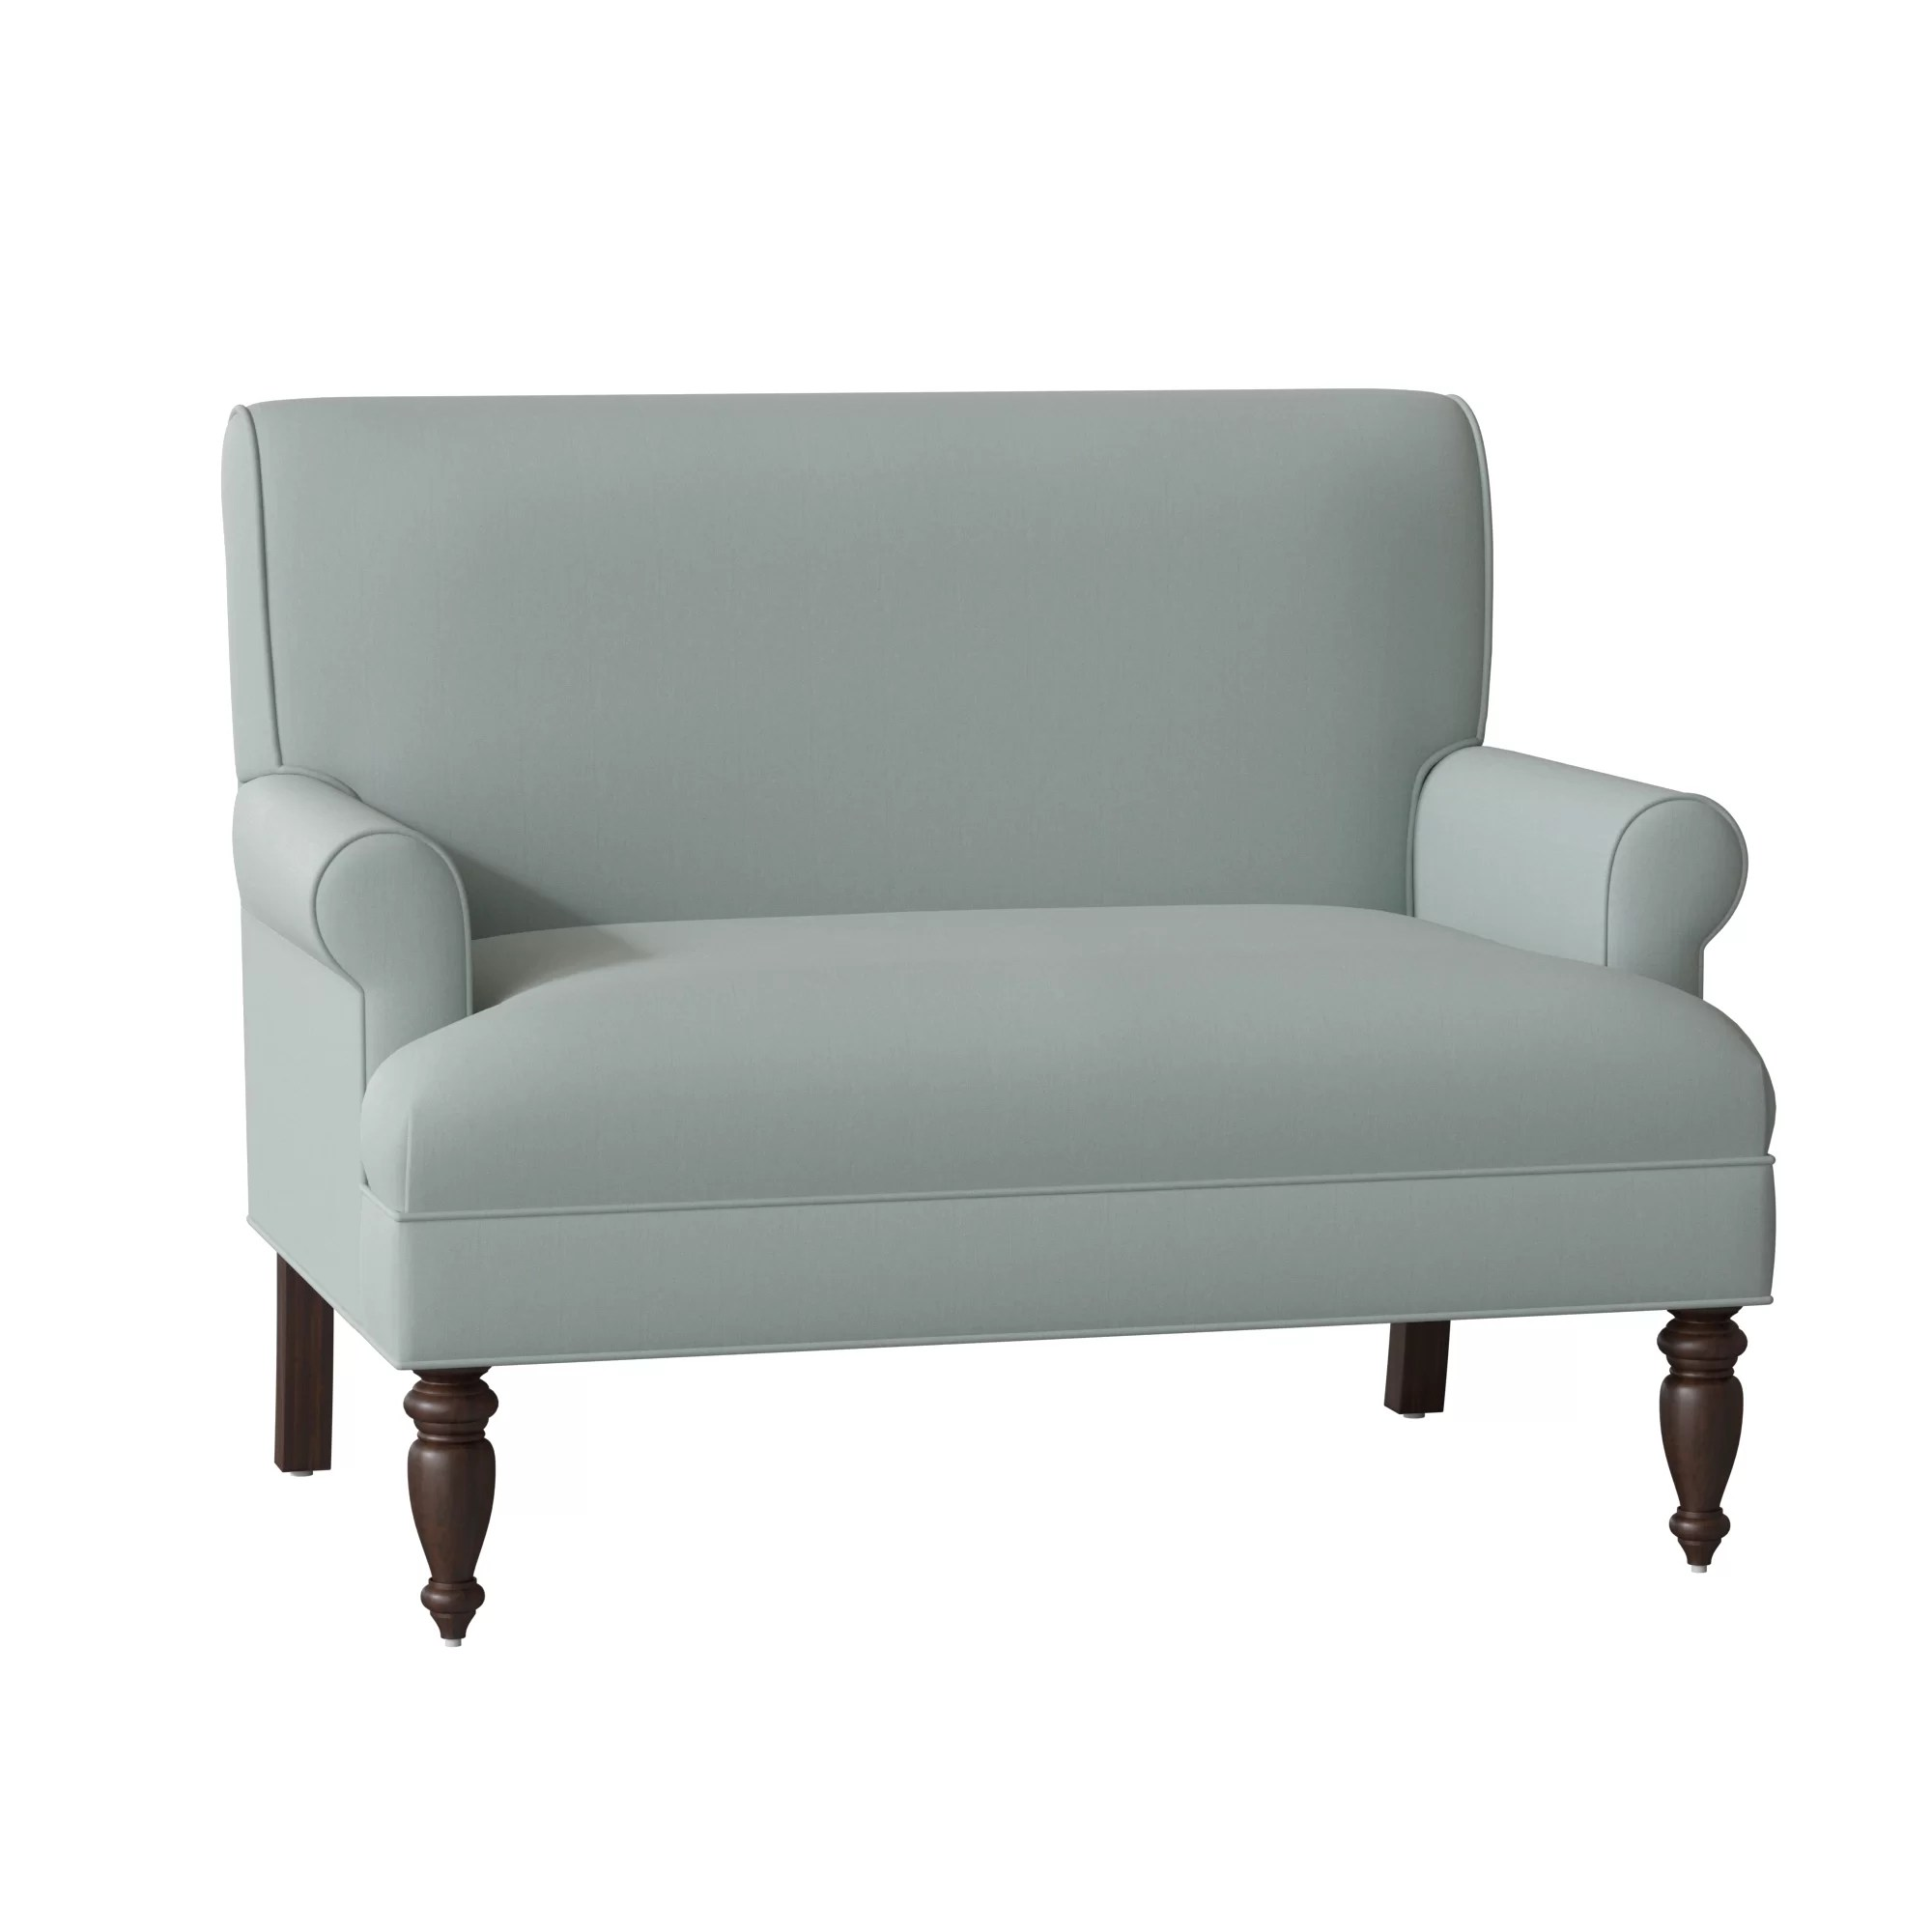 Sofa Arm Covers Dublin Arendtsville Settee